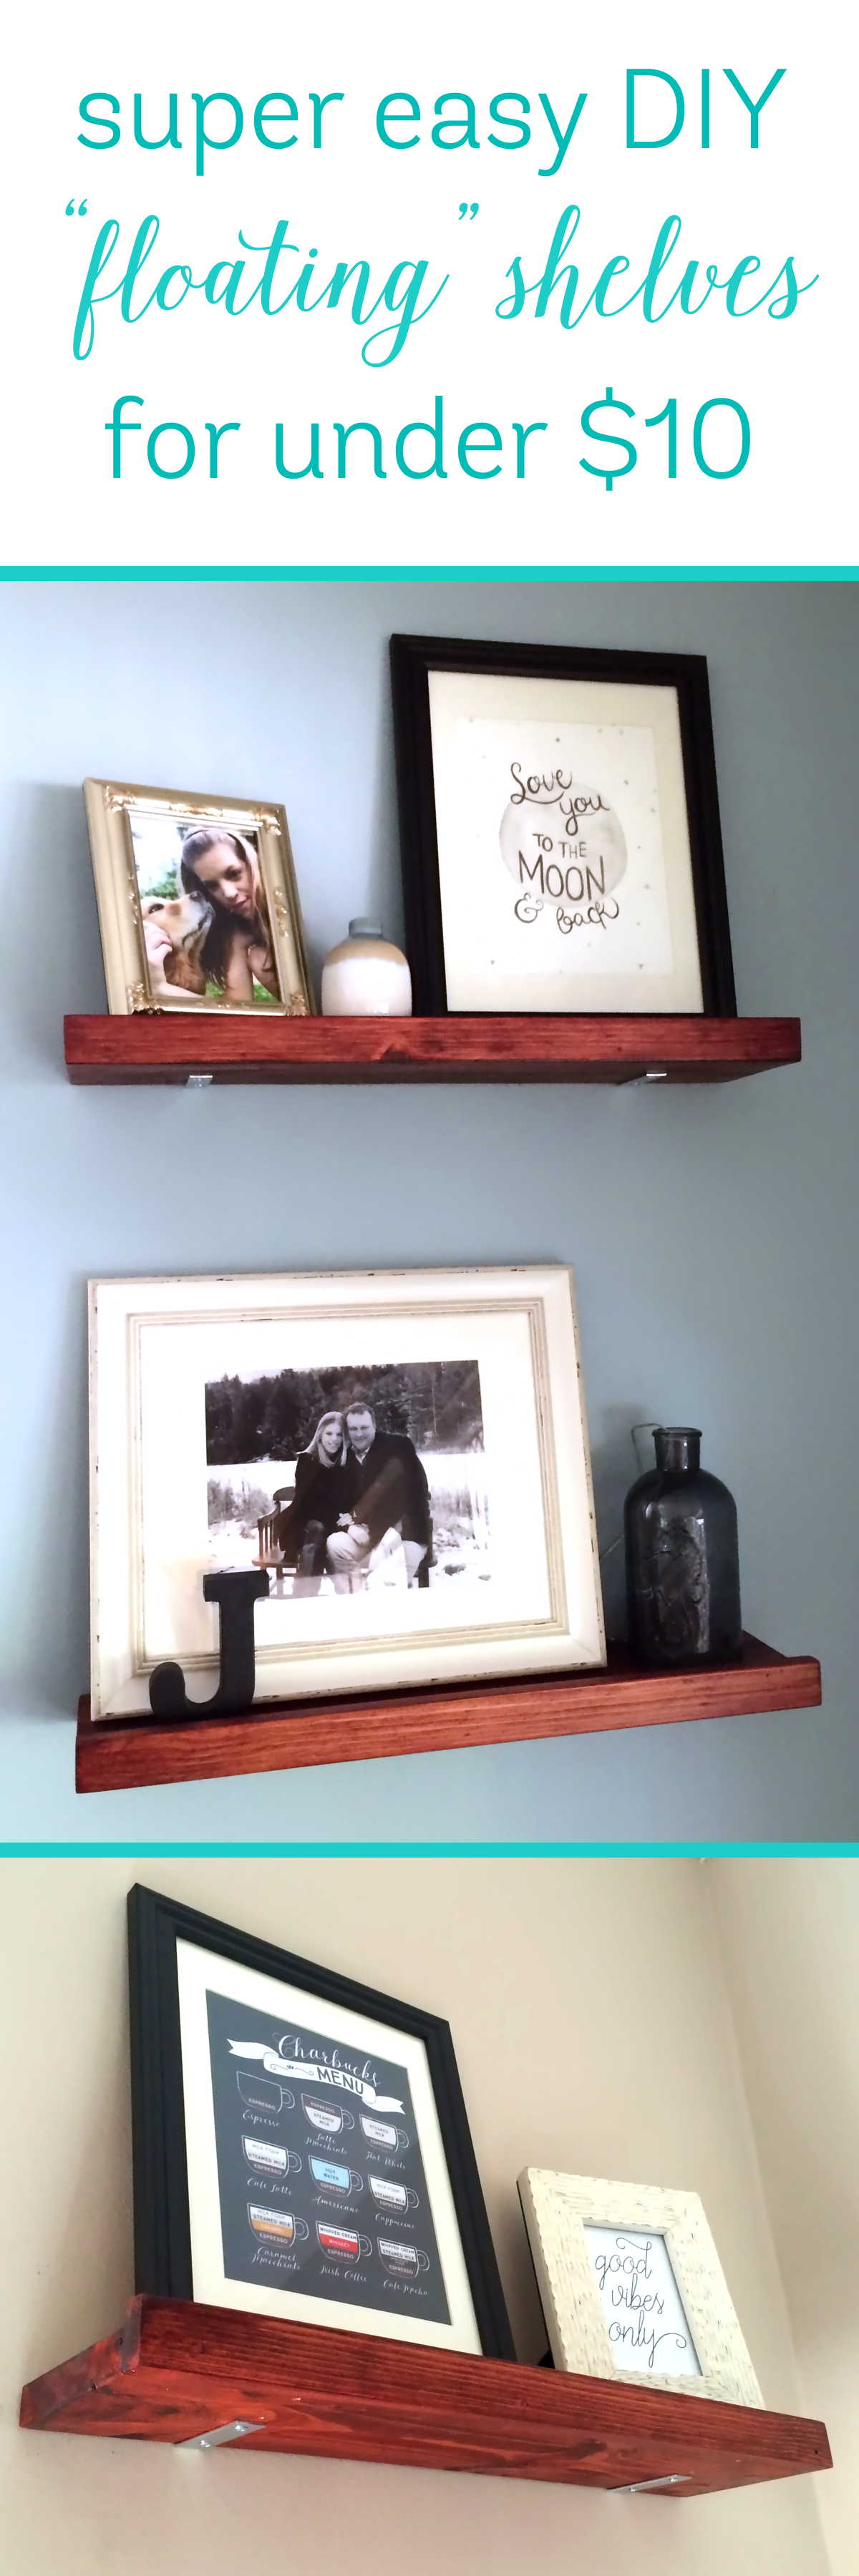 DIY Faux Floating Shelves for Under 10 a Shelf! Riss